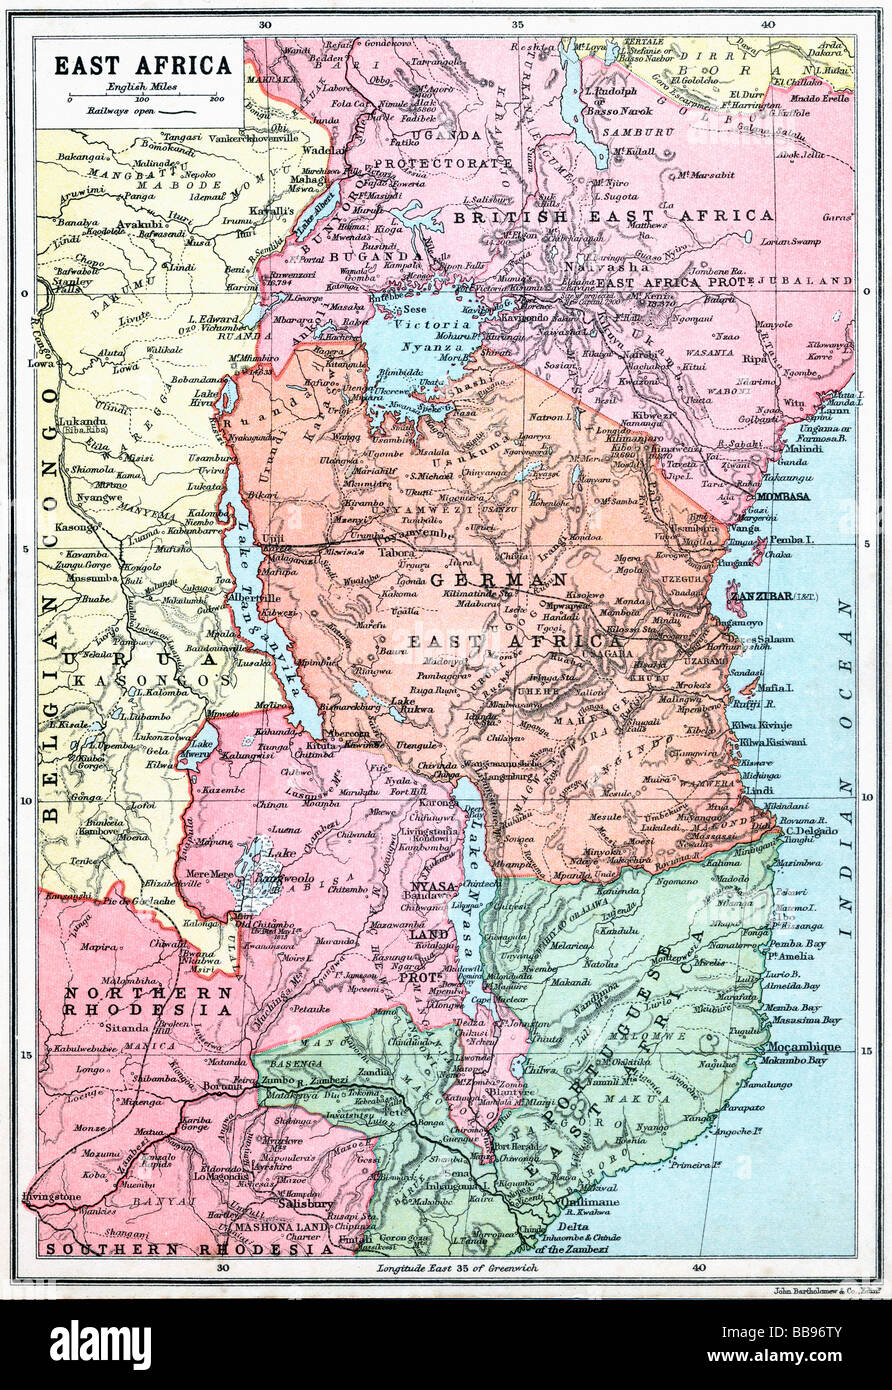 Map of east africa at beginning of first world war stock photo map of east africa at beginning of first world war gumiabroncs Image collections